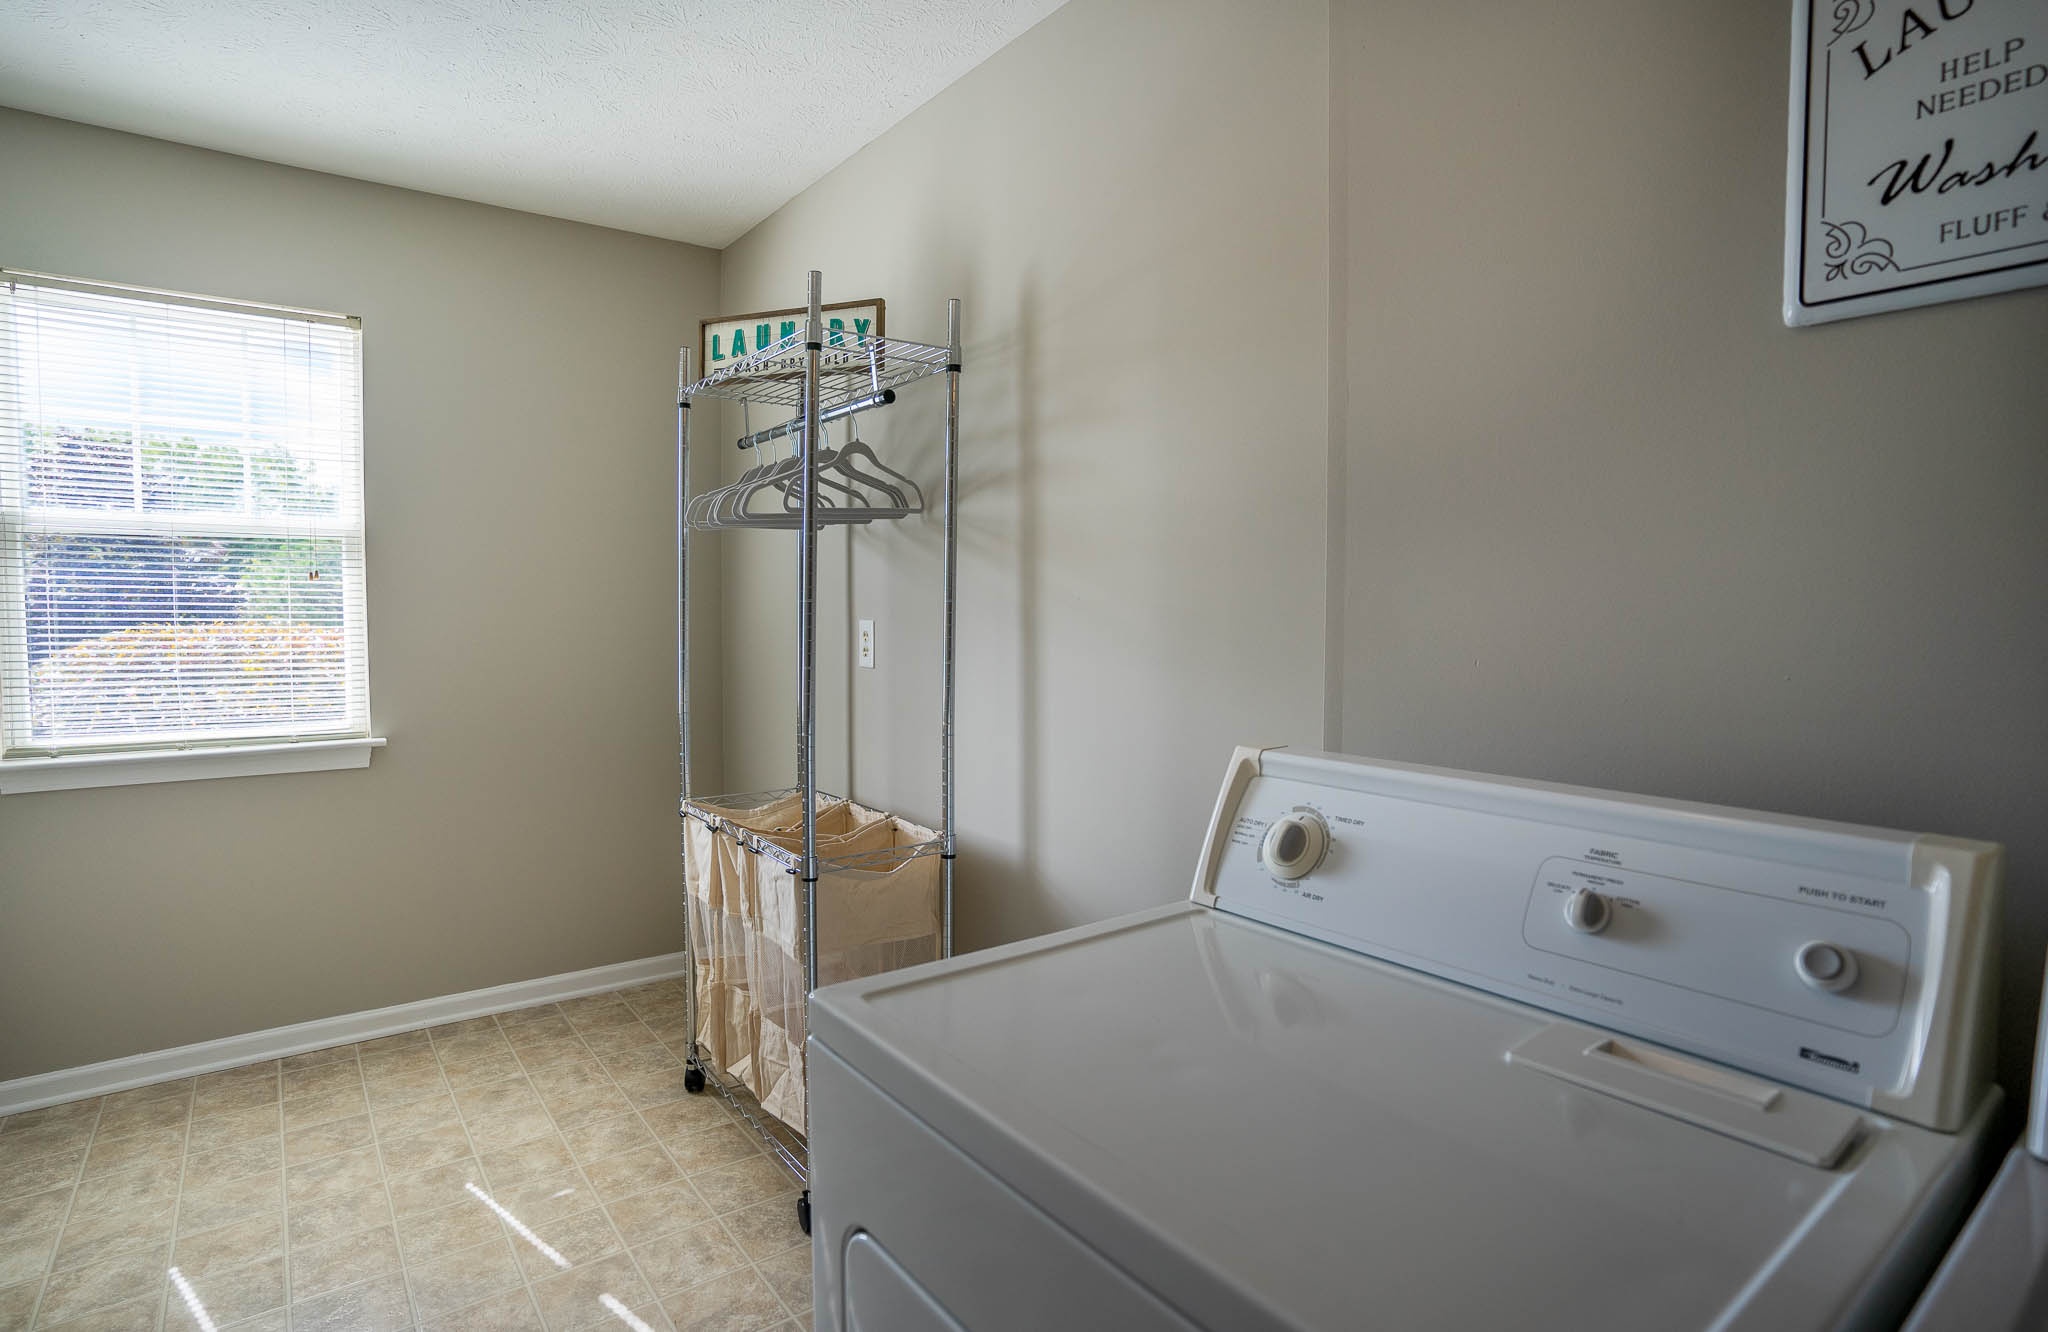 Laundry Room at Webster Woods Townhouse Apartments in Webster, New York